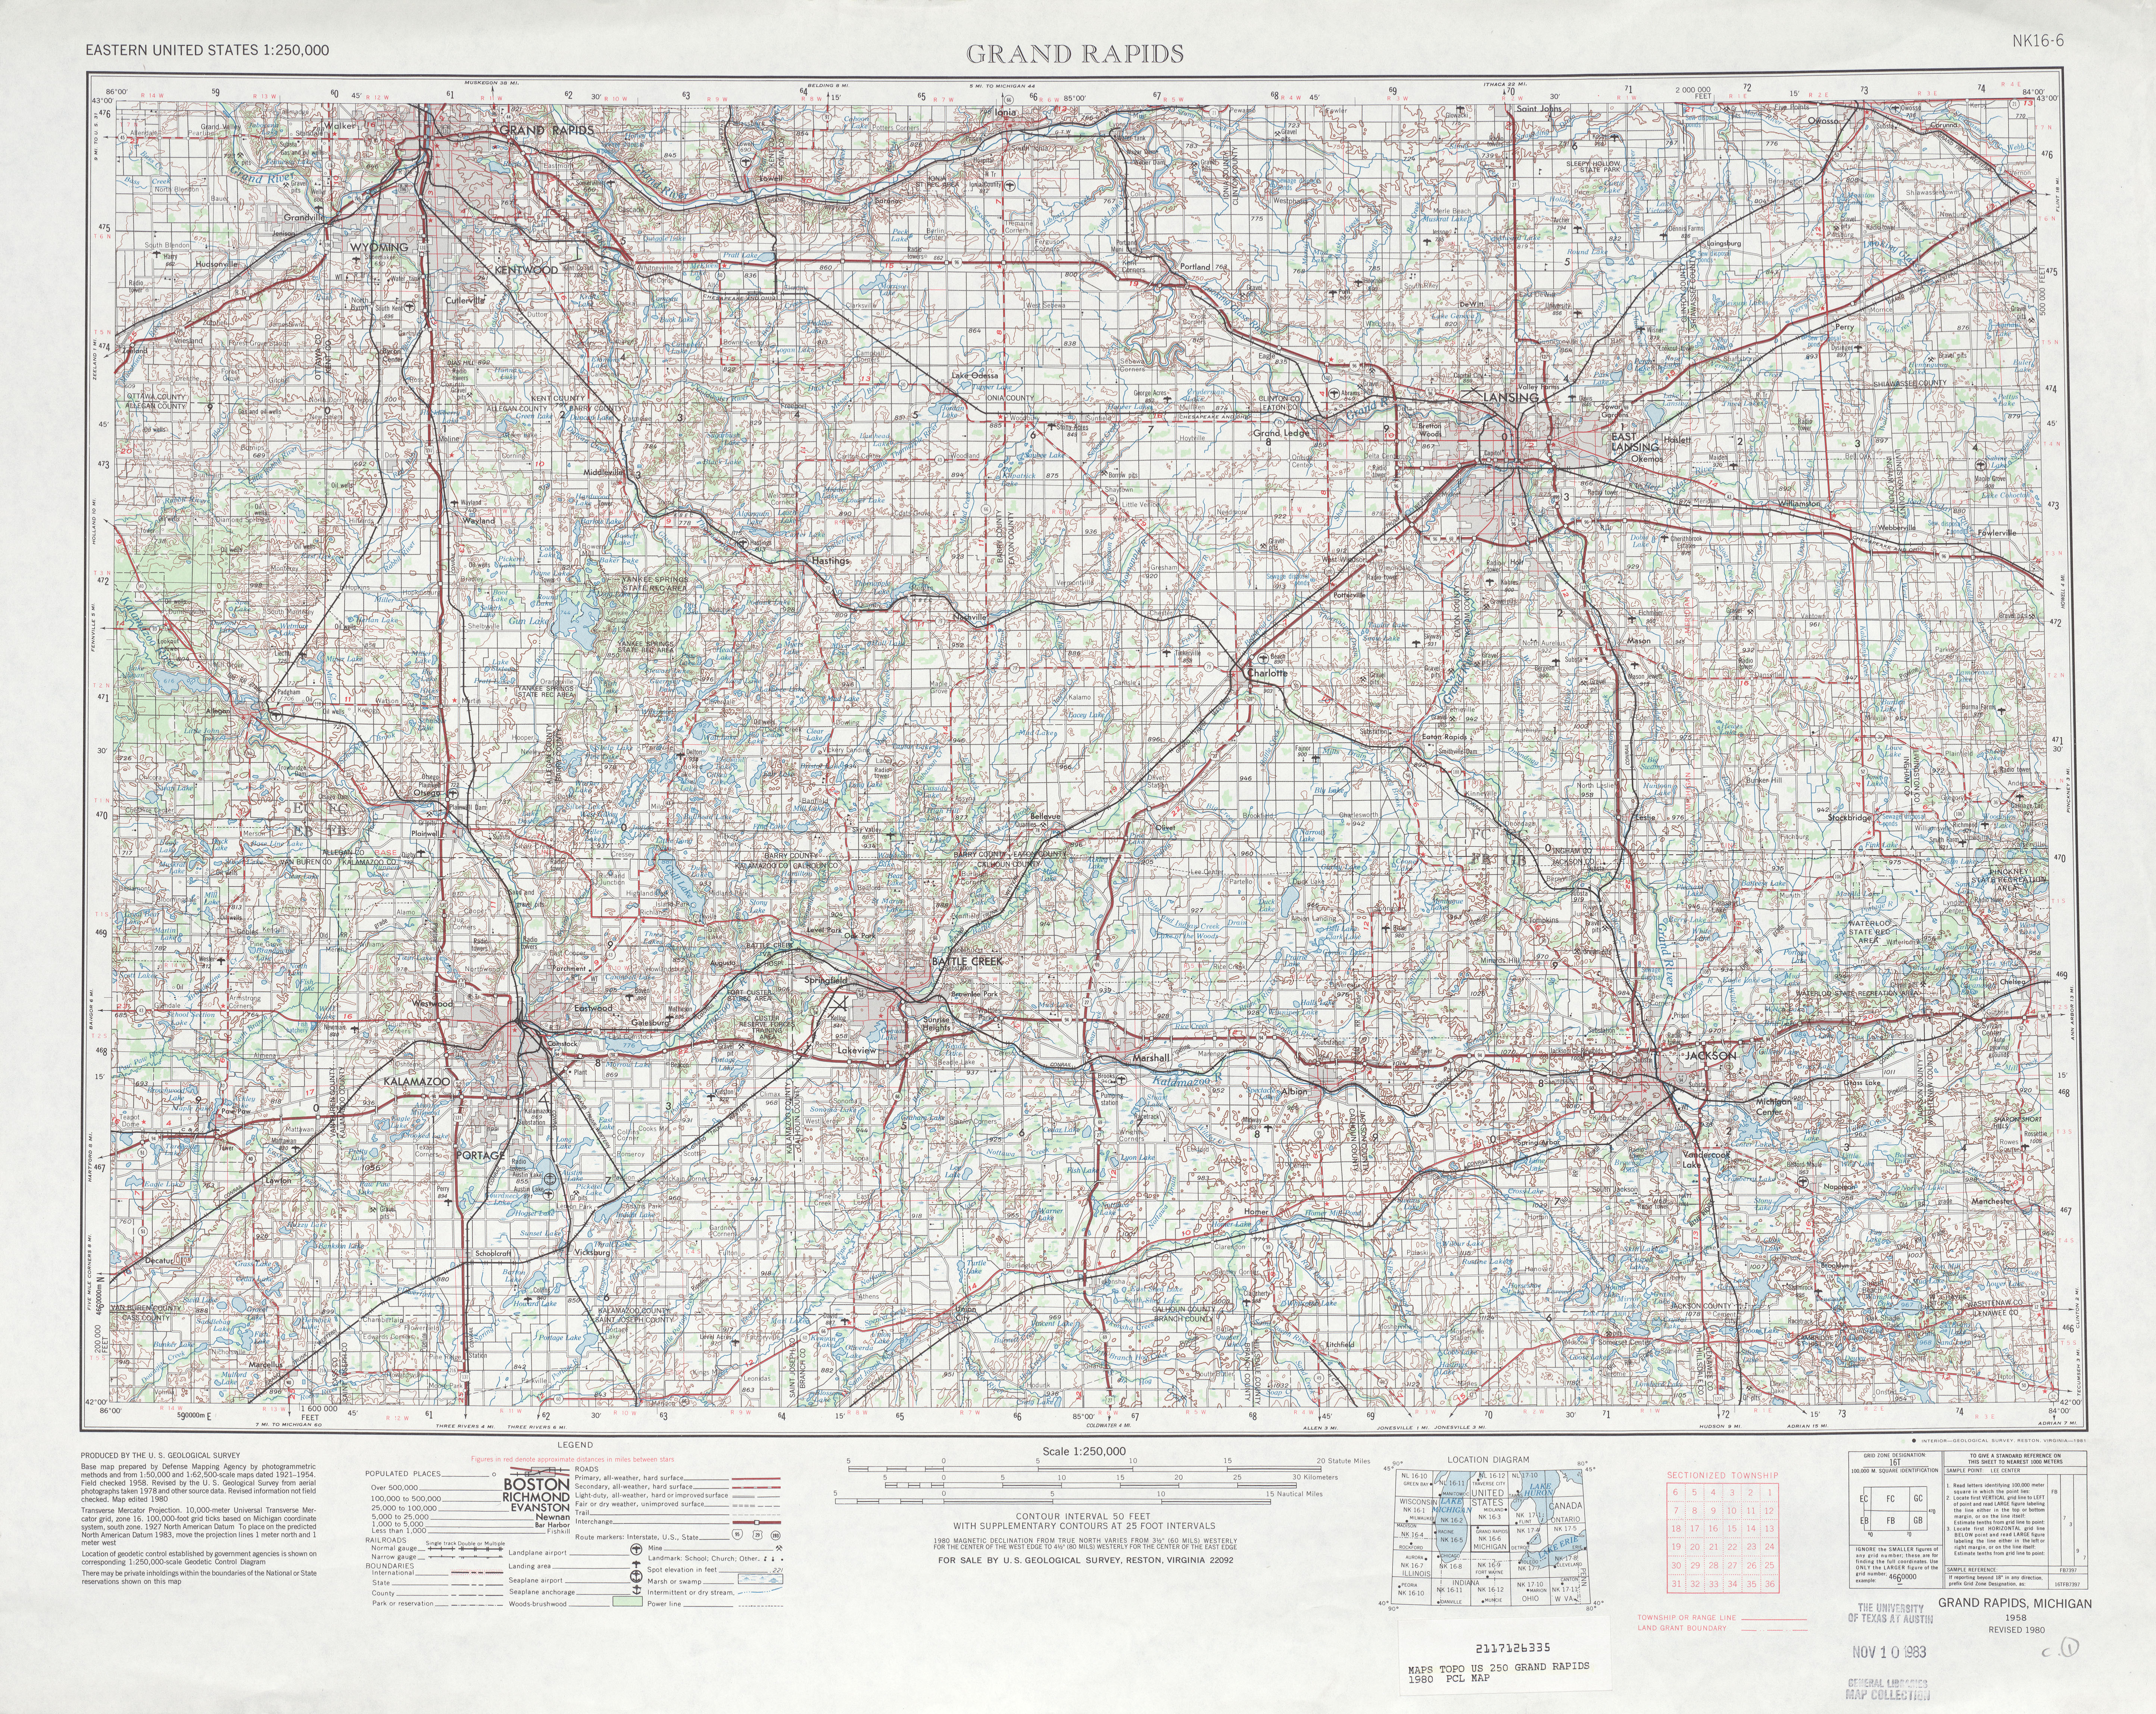 Grand Rapids Topographic Map Sheet, United States 1980